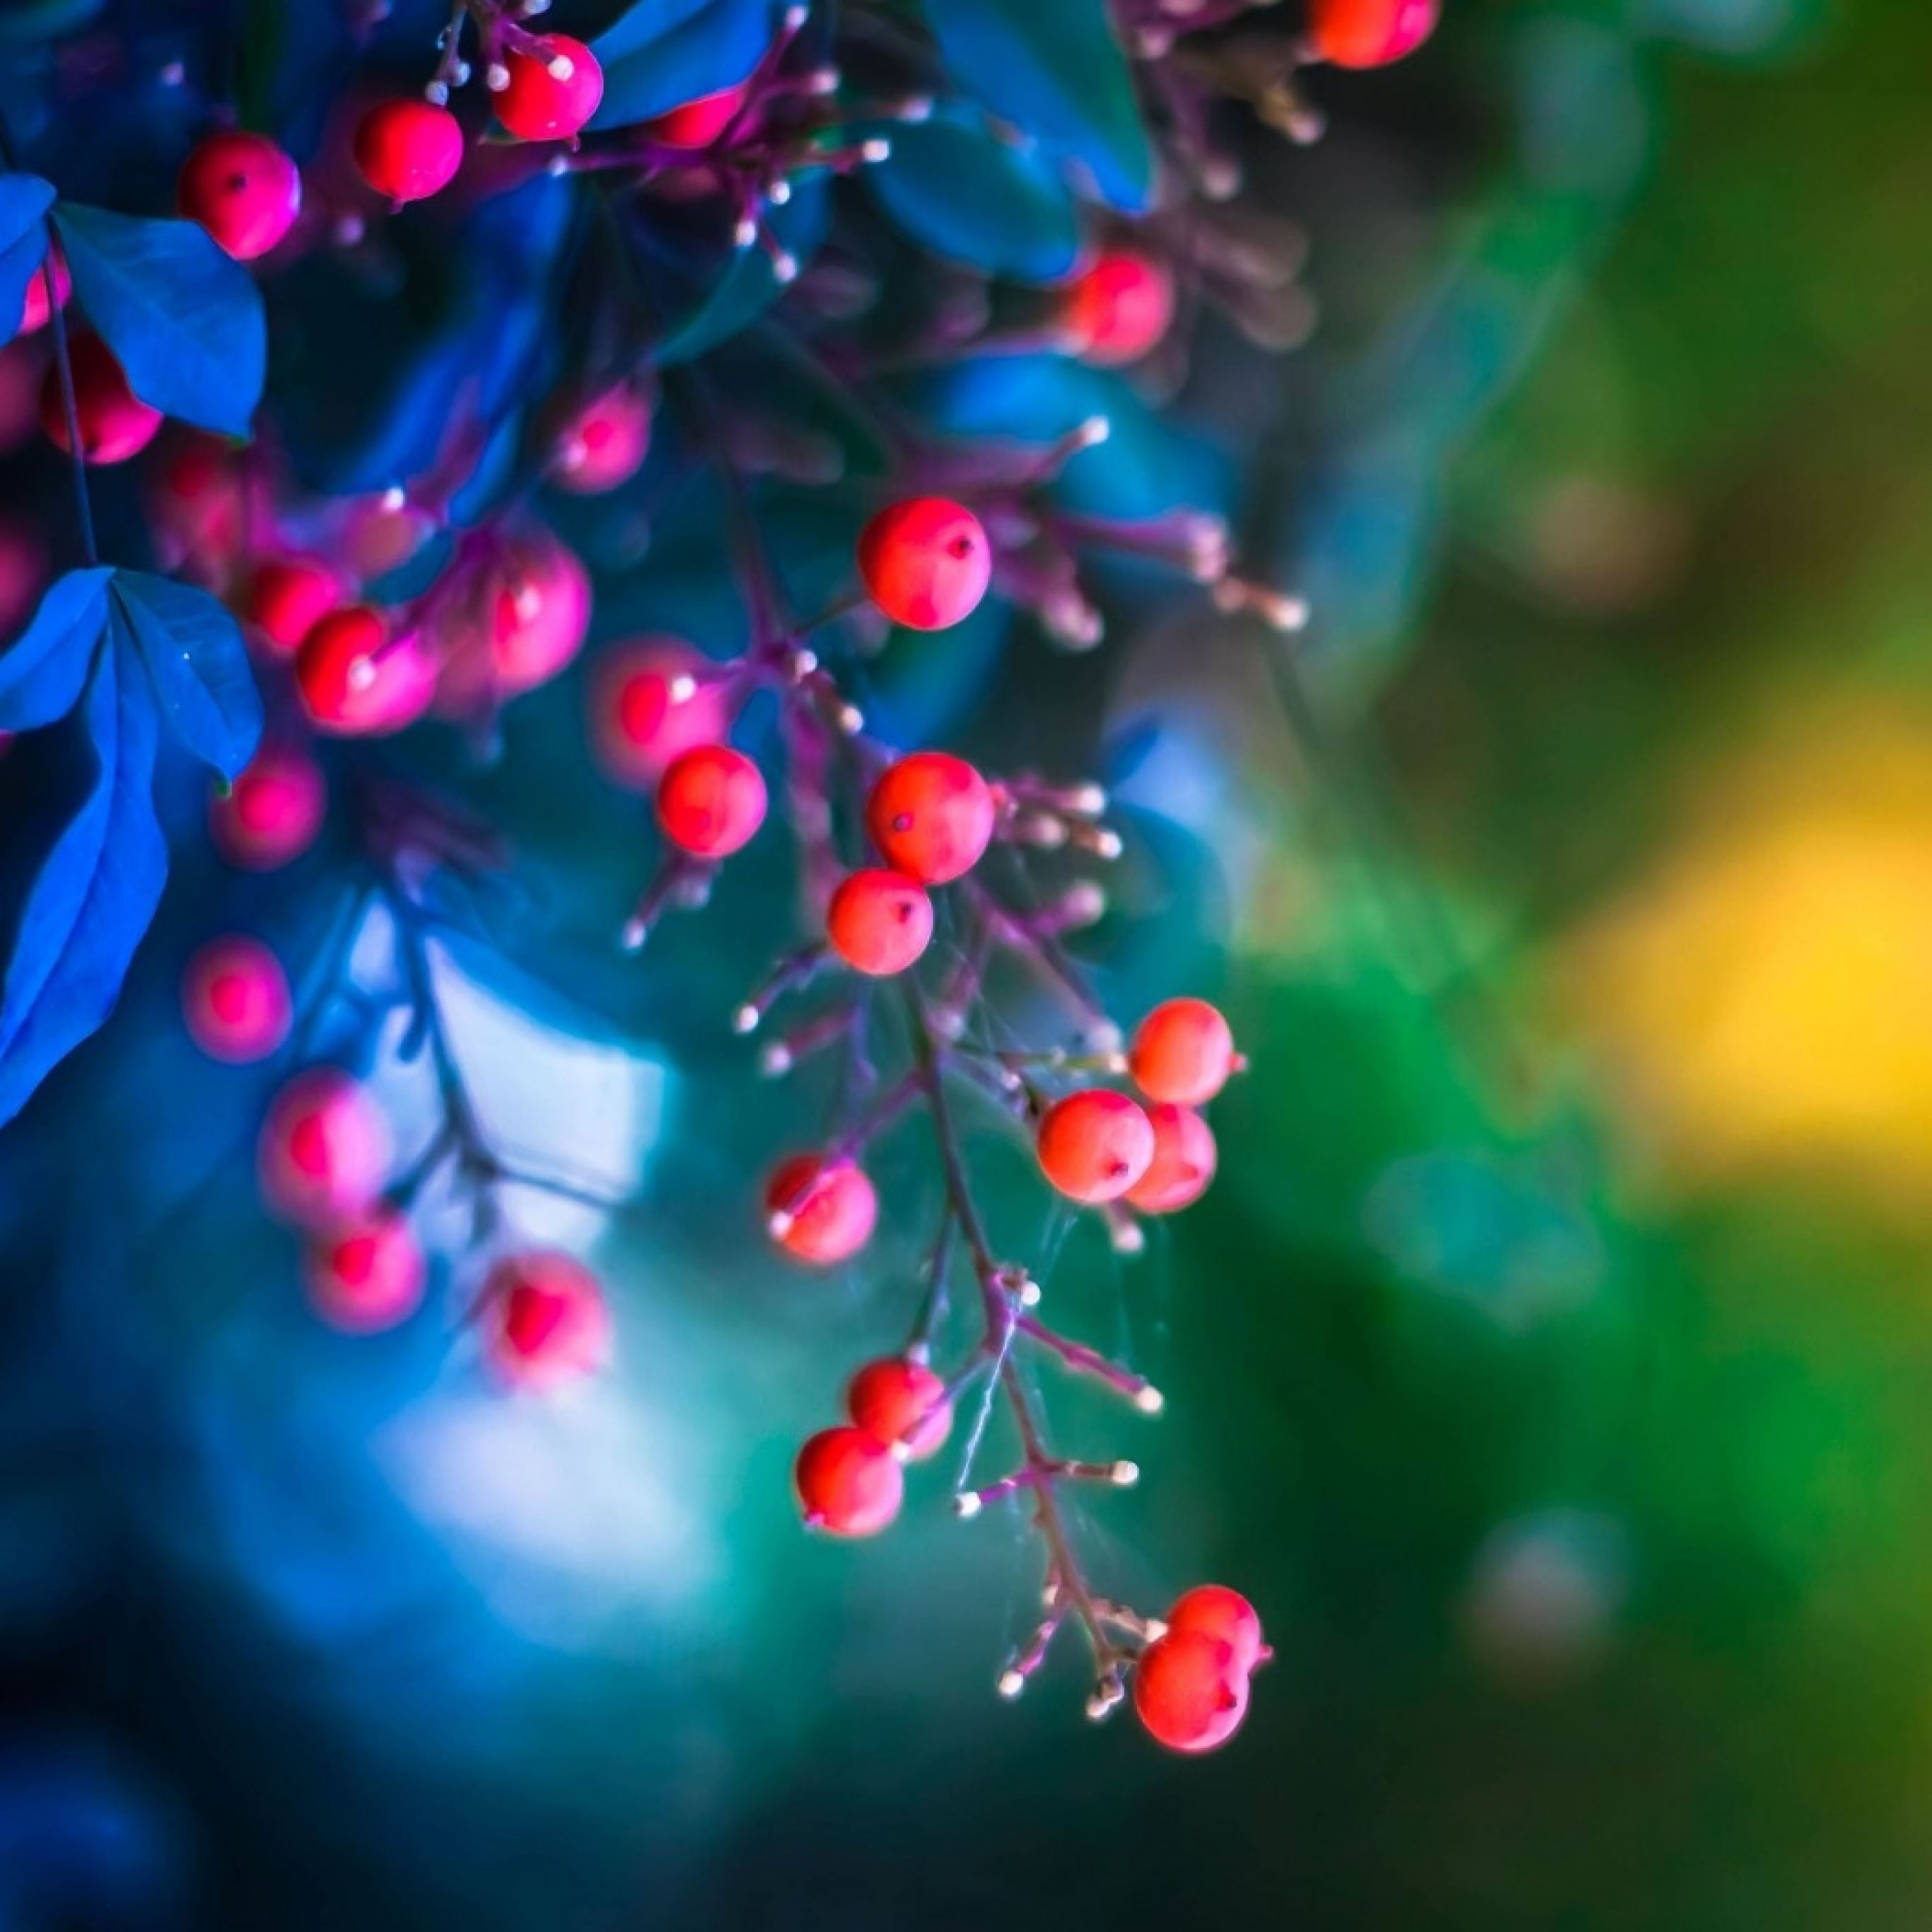 Twig berries leaves background iPad Pro wallpaper